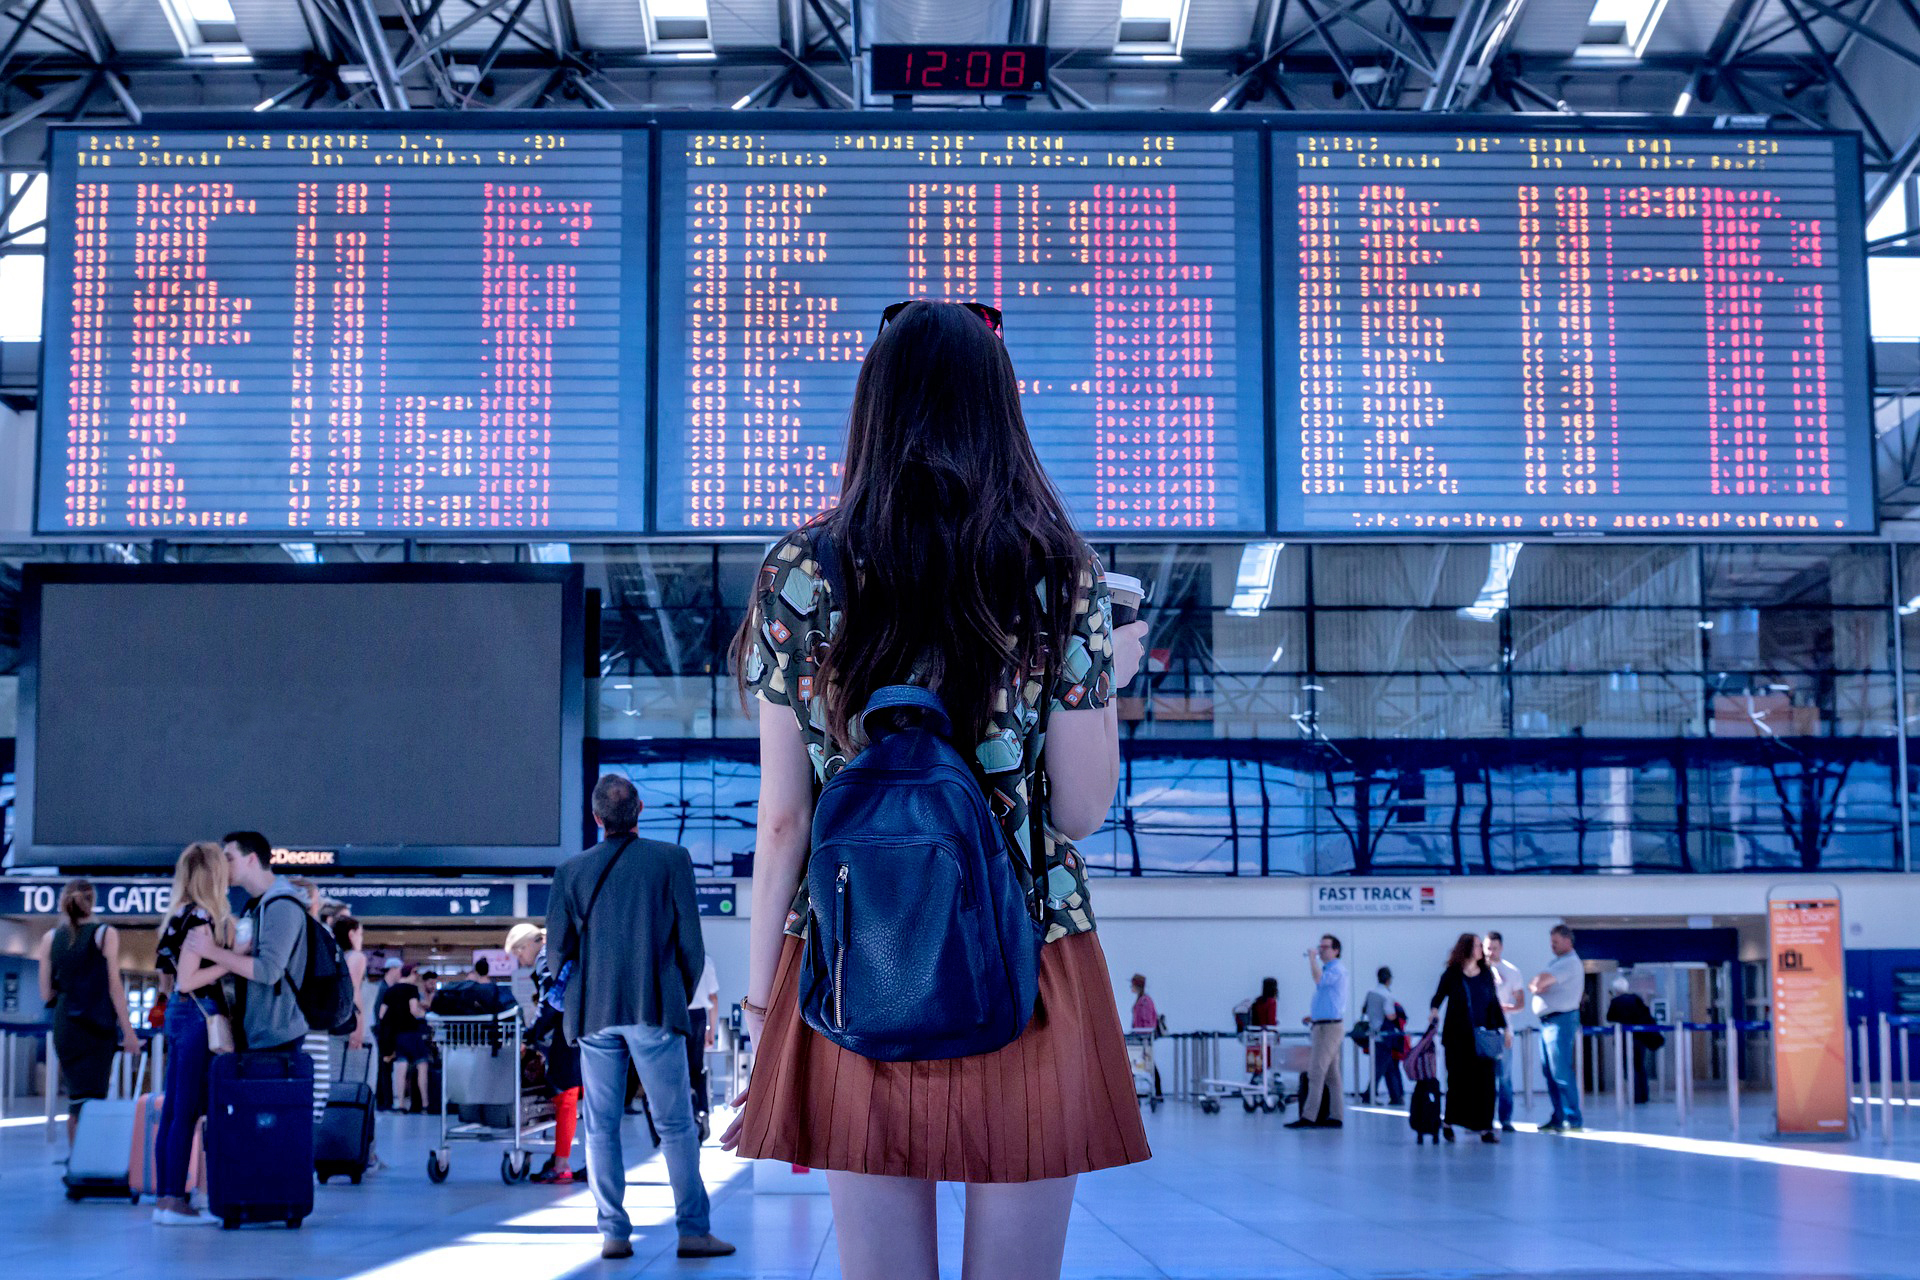 Airports in Emilia Romagna: how to arrive by plane